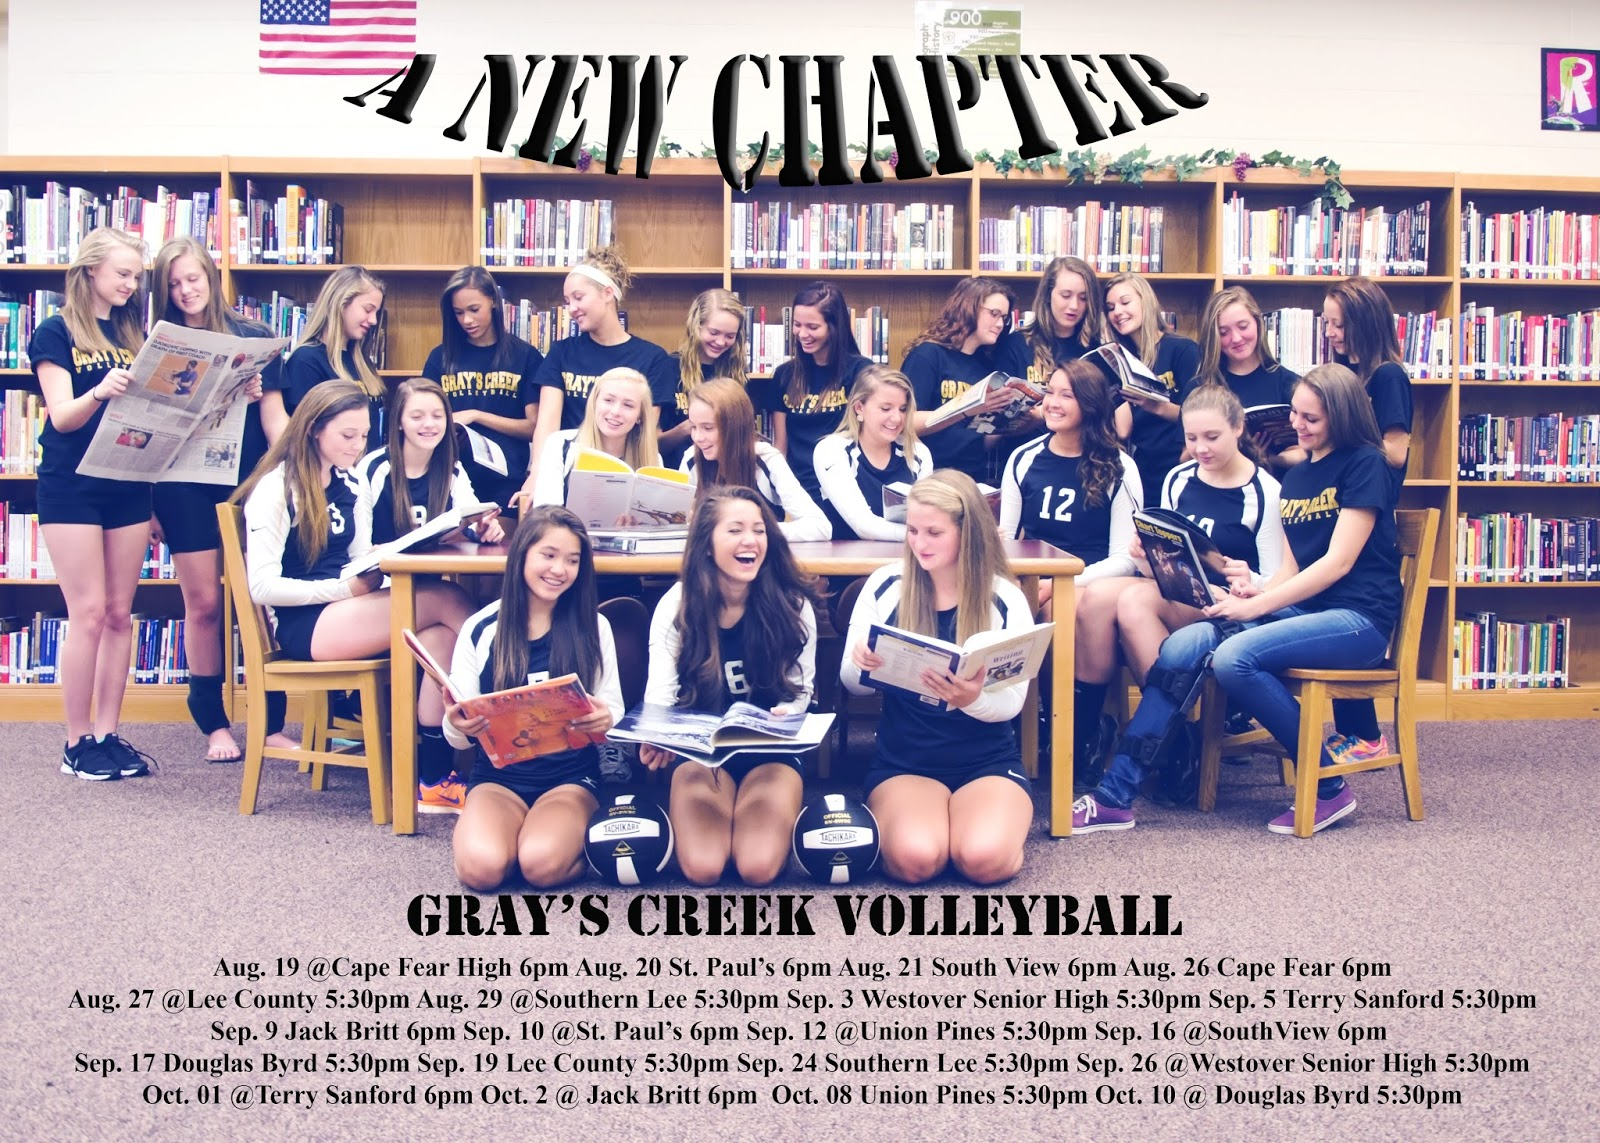 Volleyball Team Posters And Poster For The Team to